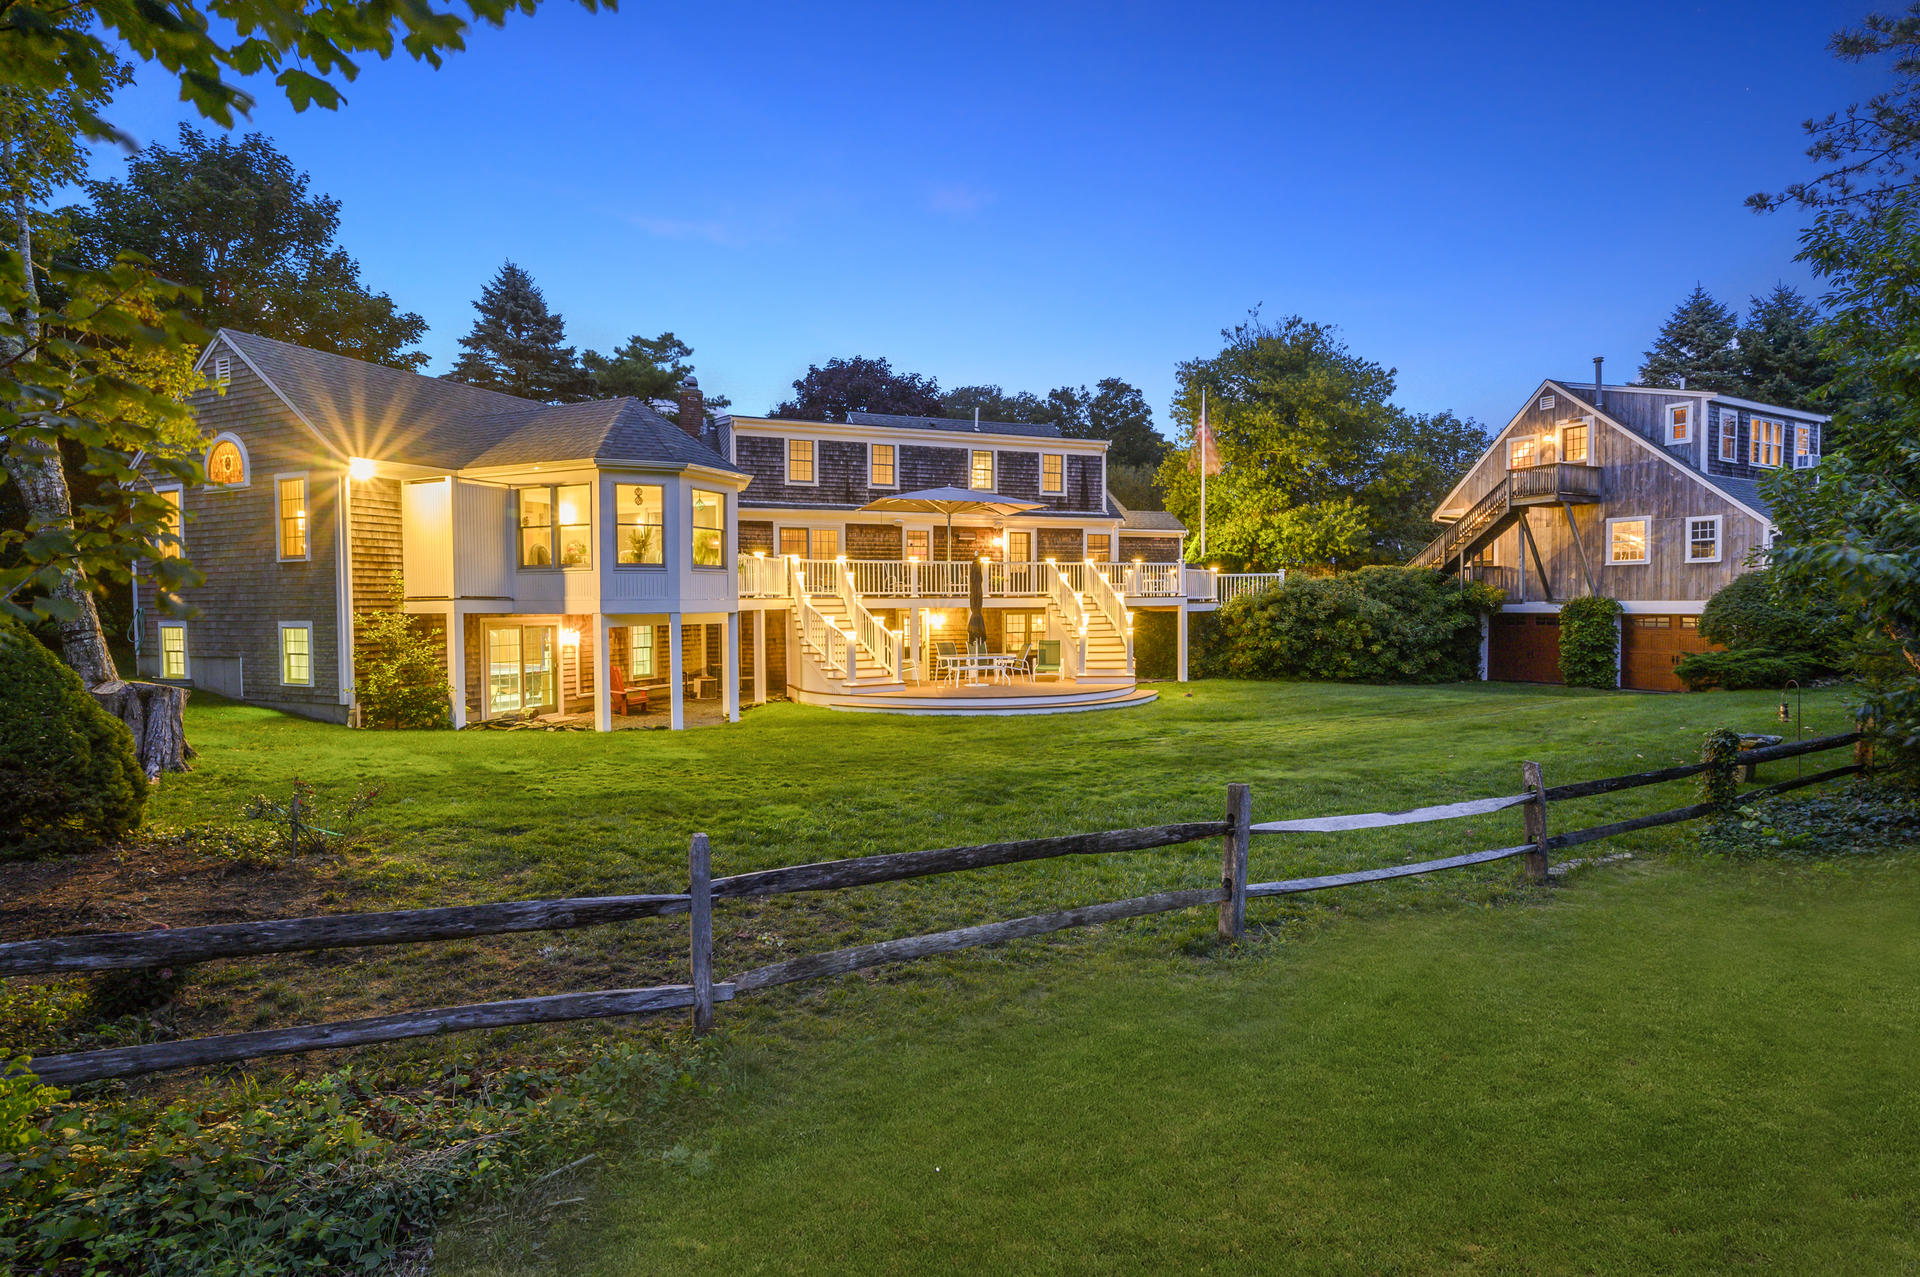 75 Hitching Post Road, Chatham MA, 02633 sales details